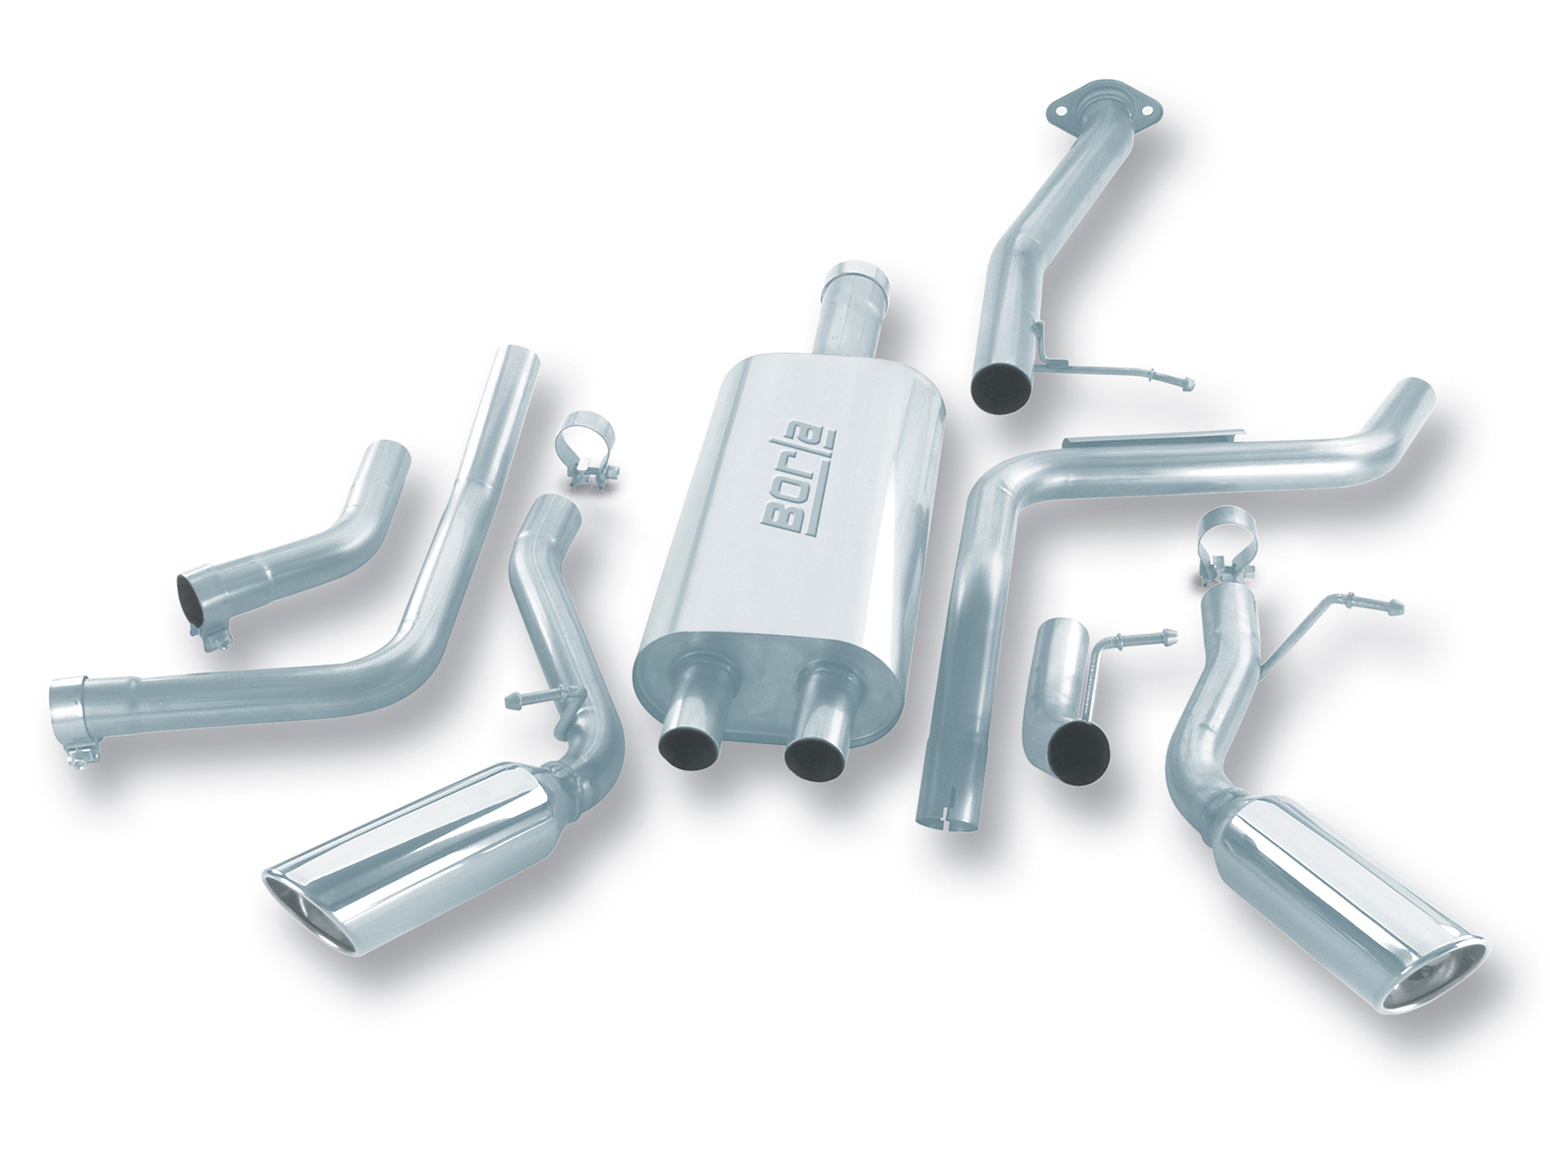 Gmc Yukon Xl 1500 2001-2003 Borla 3&#34;, 2.25&#34; Cat-Back Exhaust System - Single Round Rolled Angle-Cut Lined Resonated